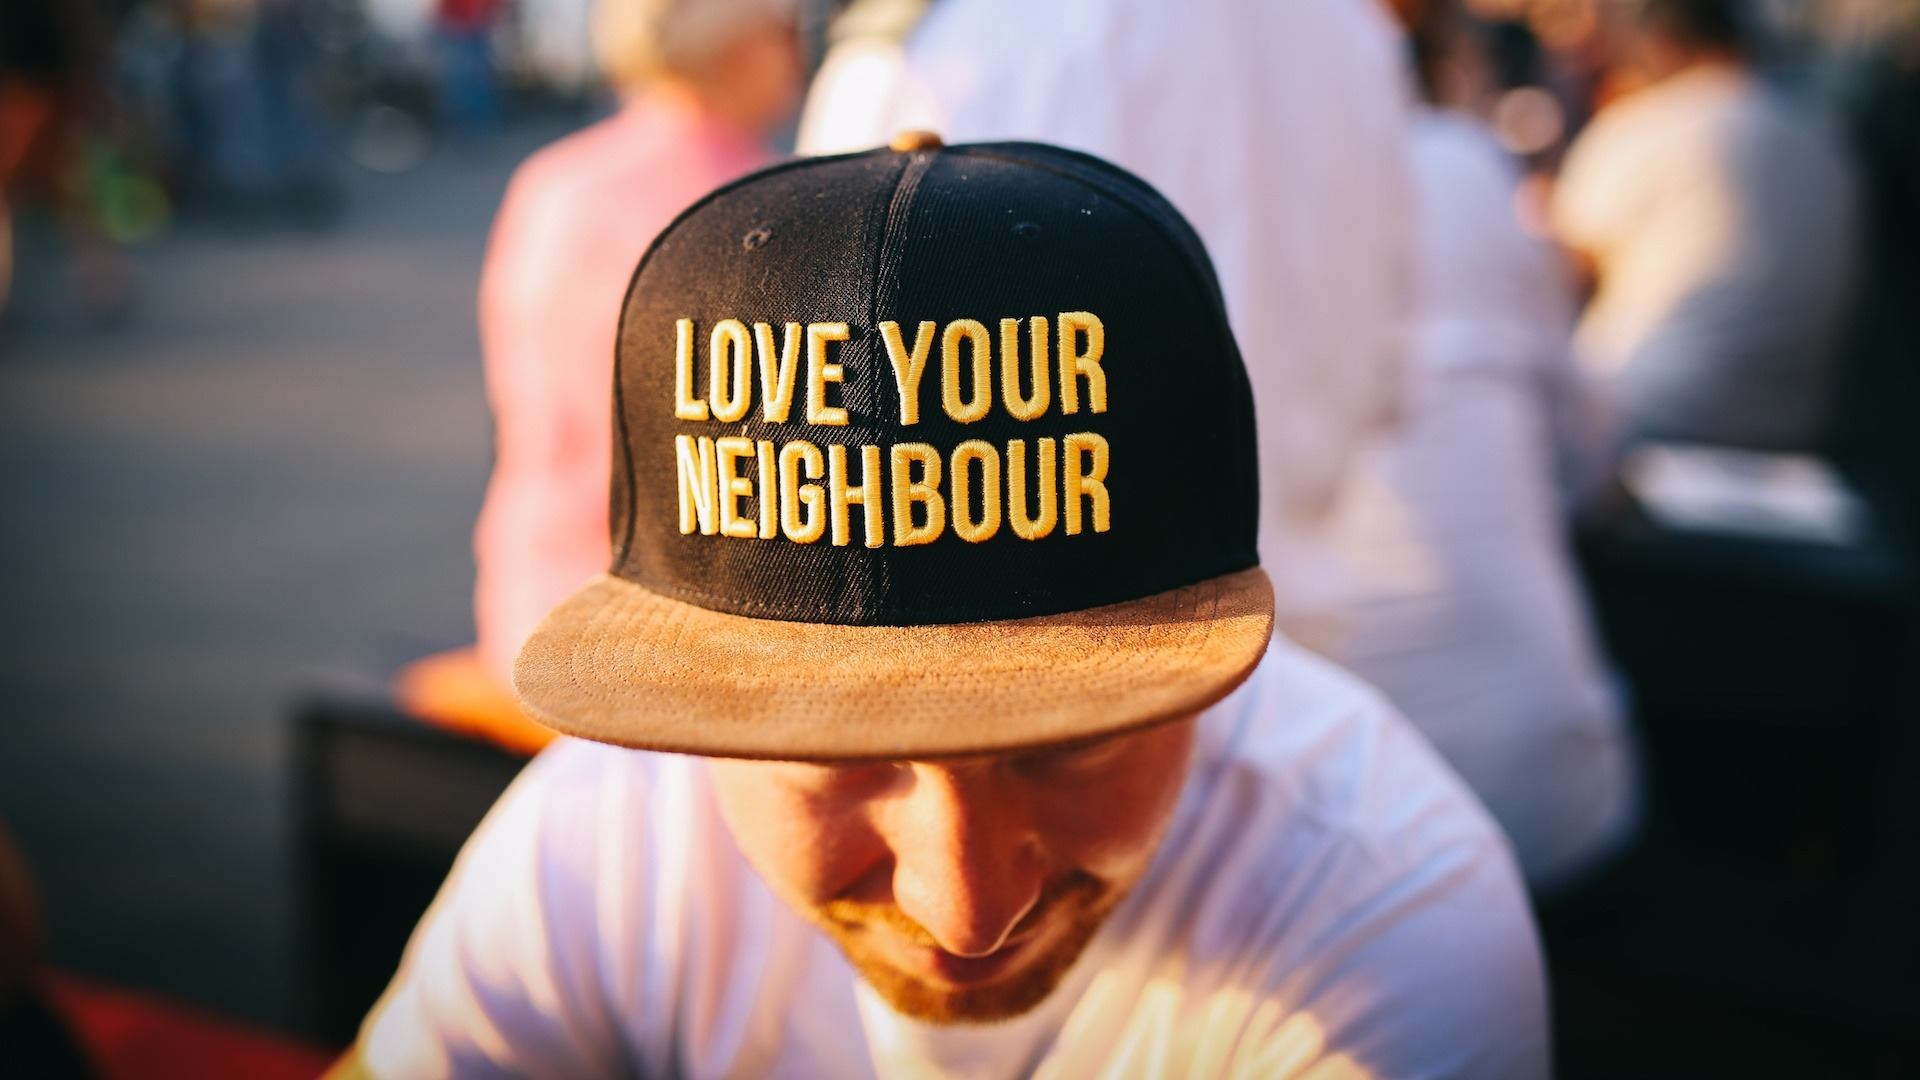 Love your neighbour image copywriting bristol agency marketing journalism